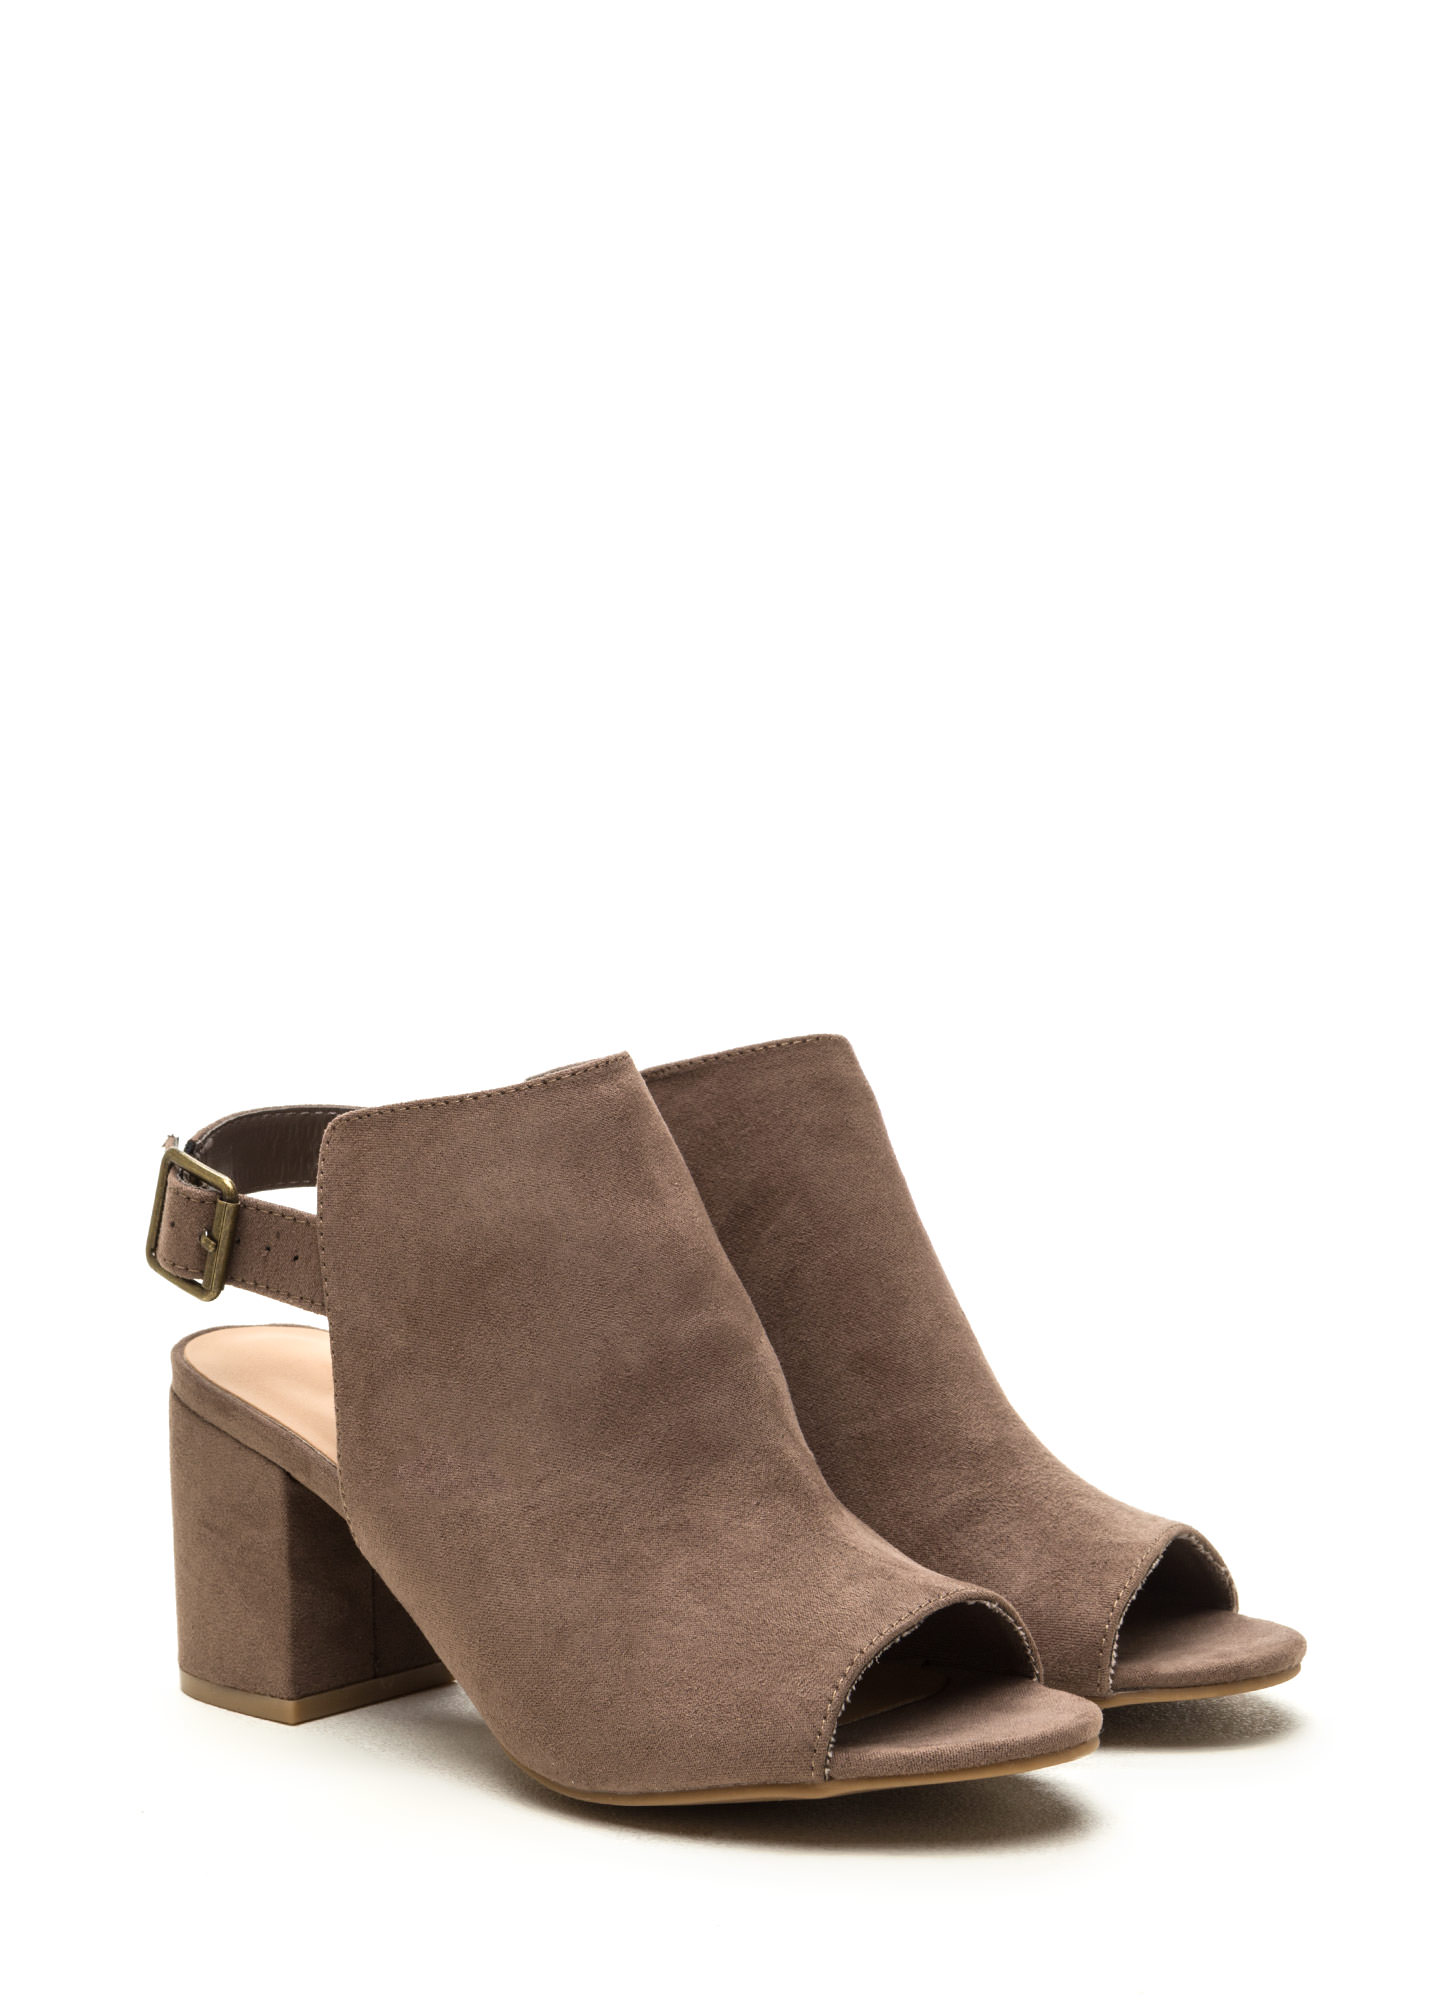 All Smiles Faux Suede Chunky Heels TAUPE